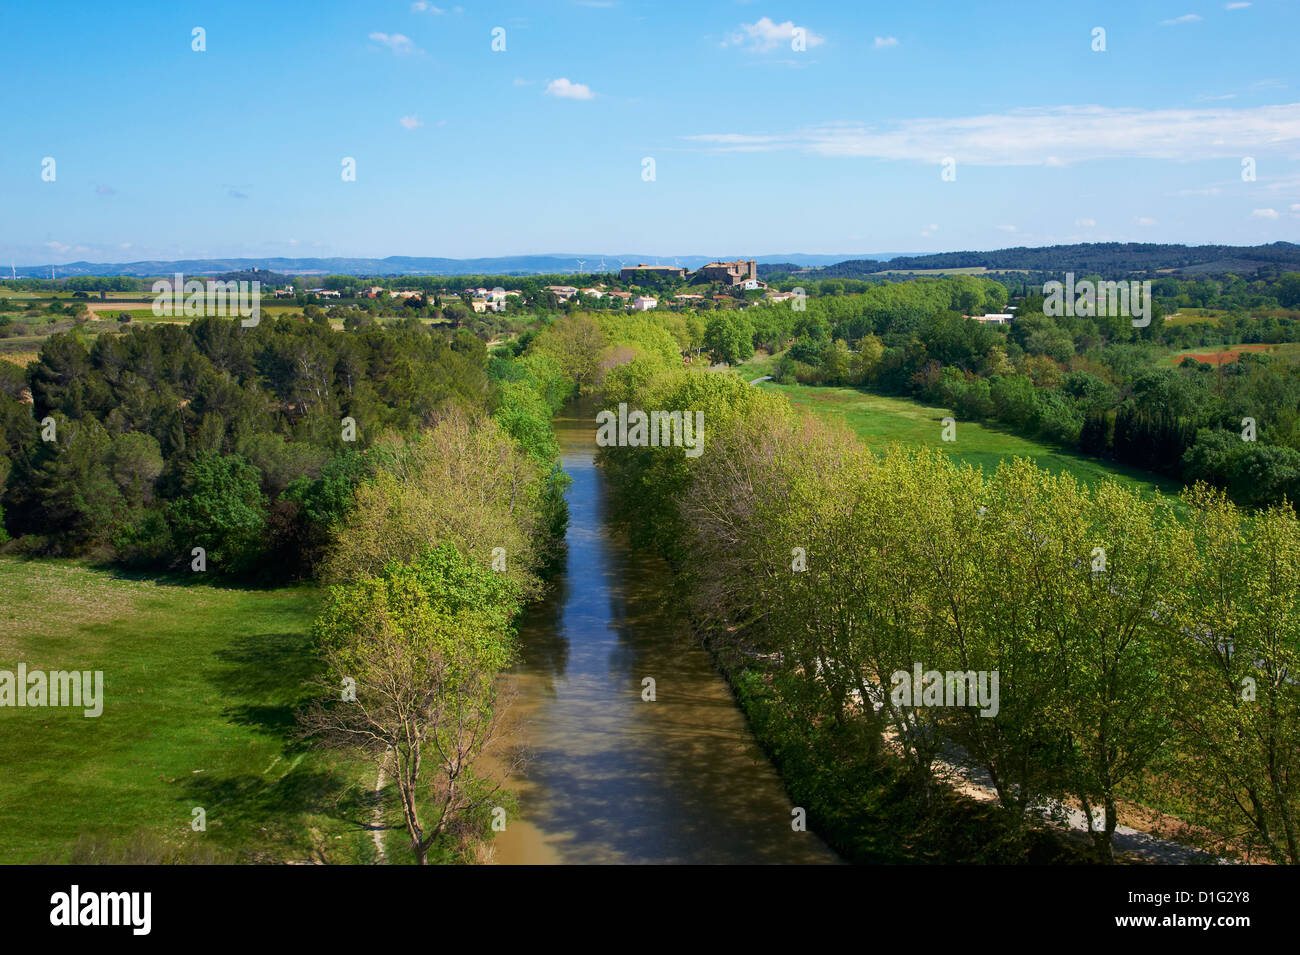 Argens Minervois village, Navigation on the Canal du Midi, Aude, Languedoc Roussillon, France, Europe - Stock Image